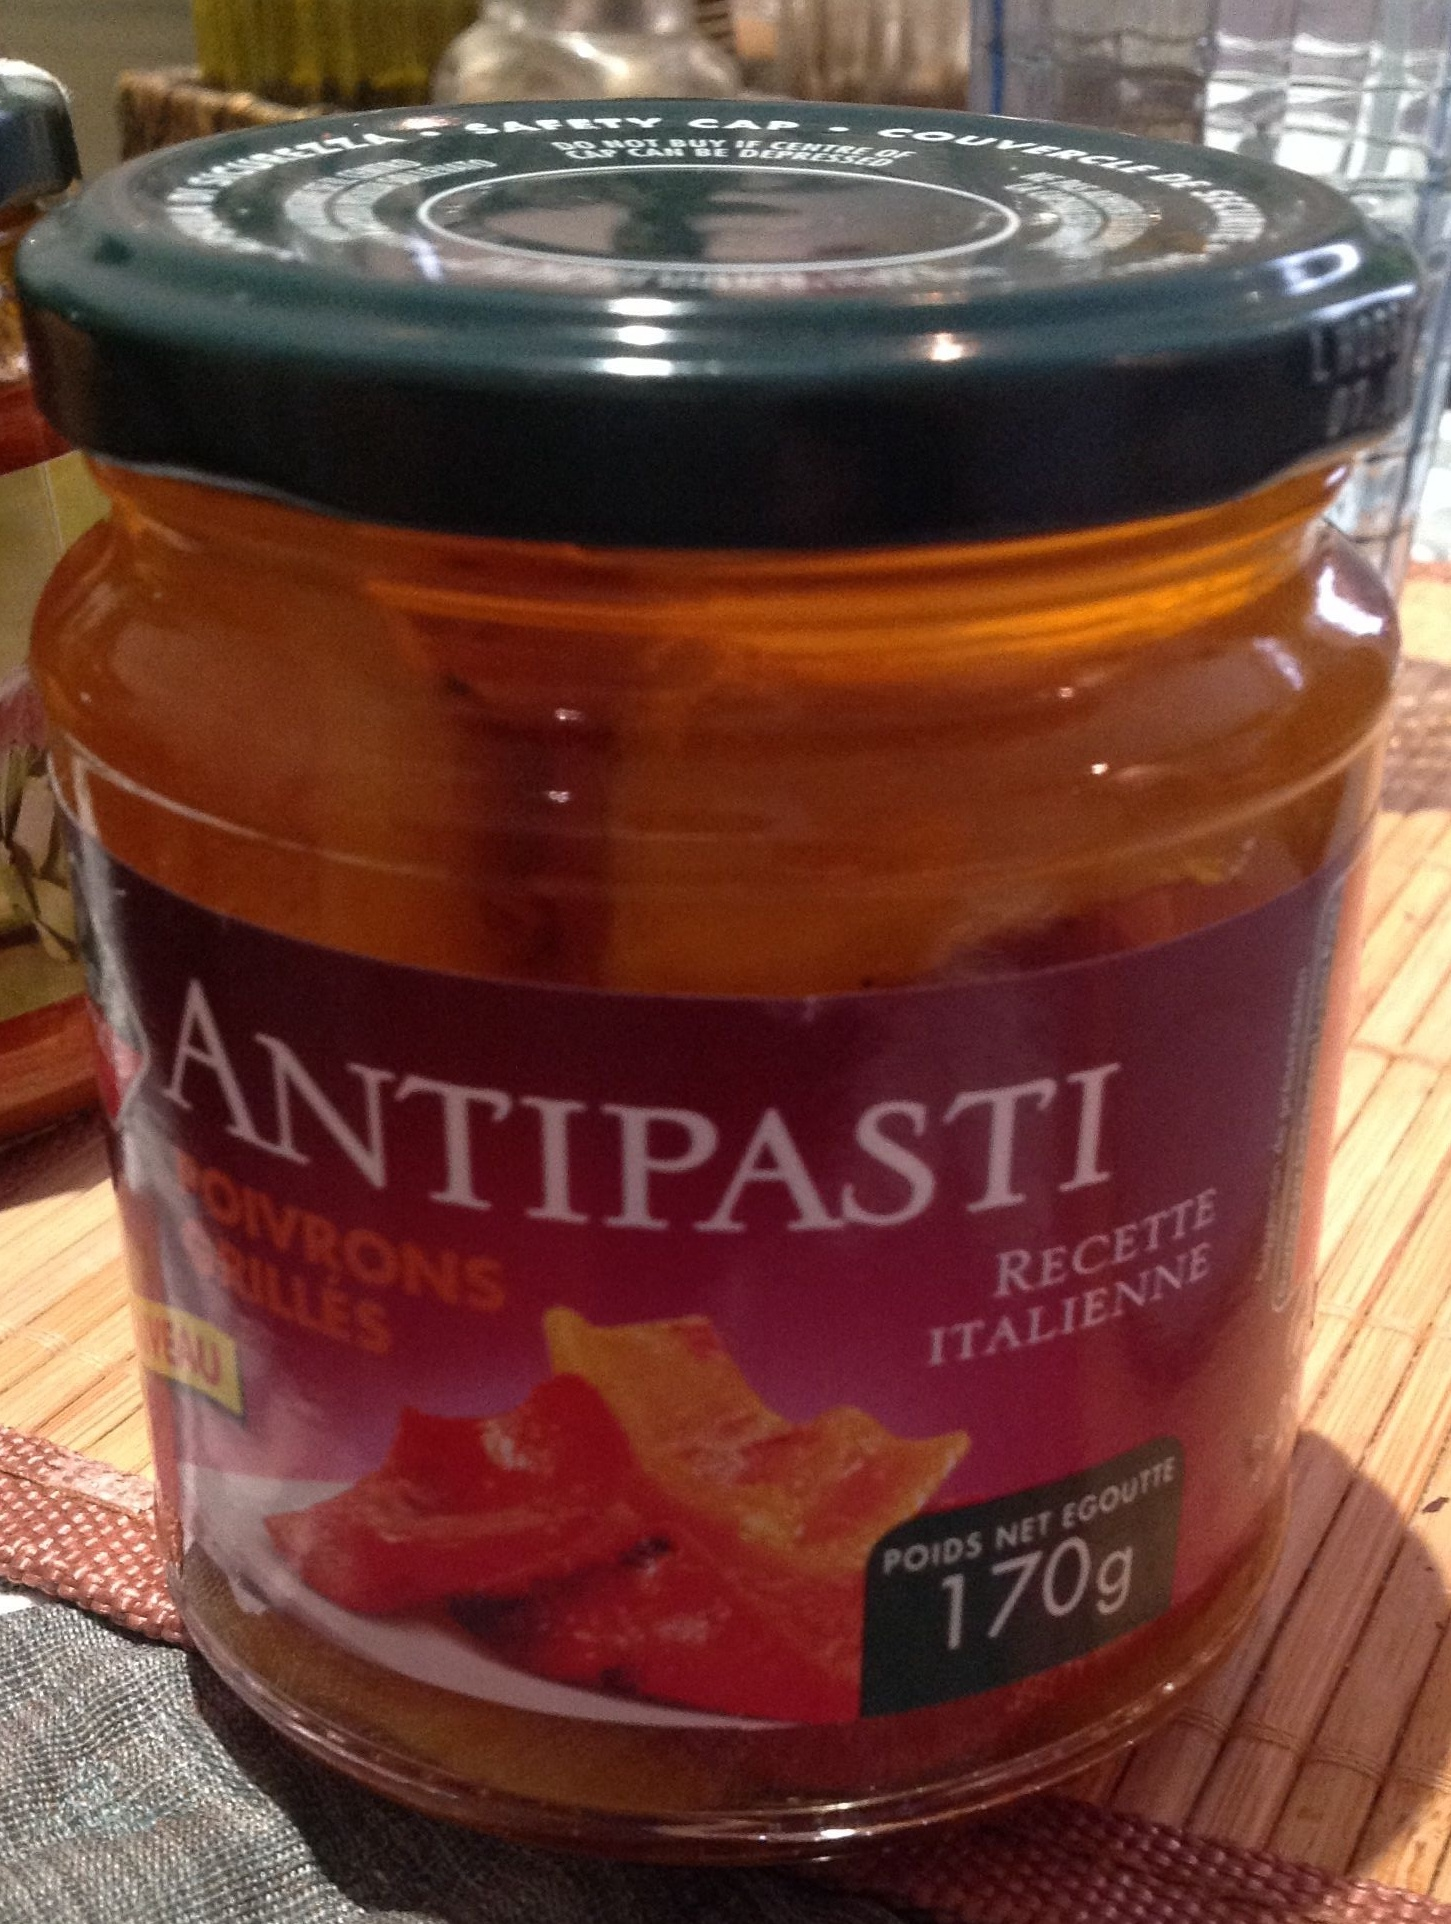 Antipasti - Product